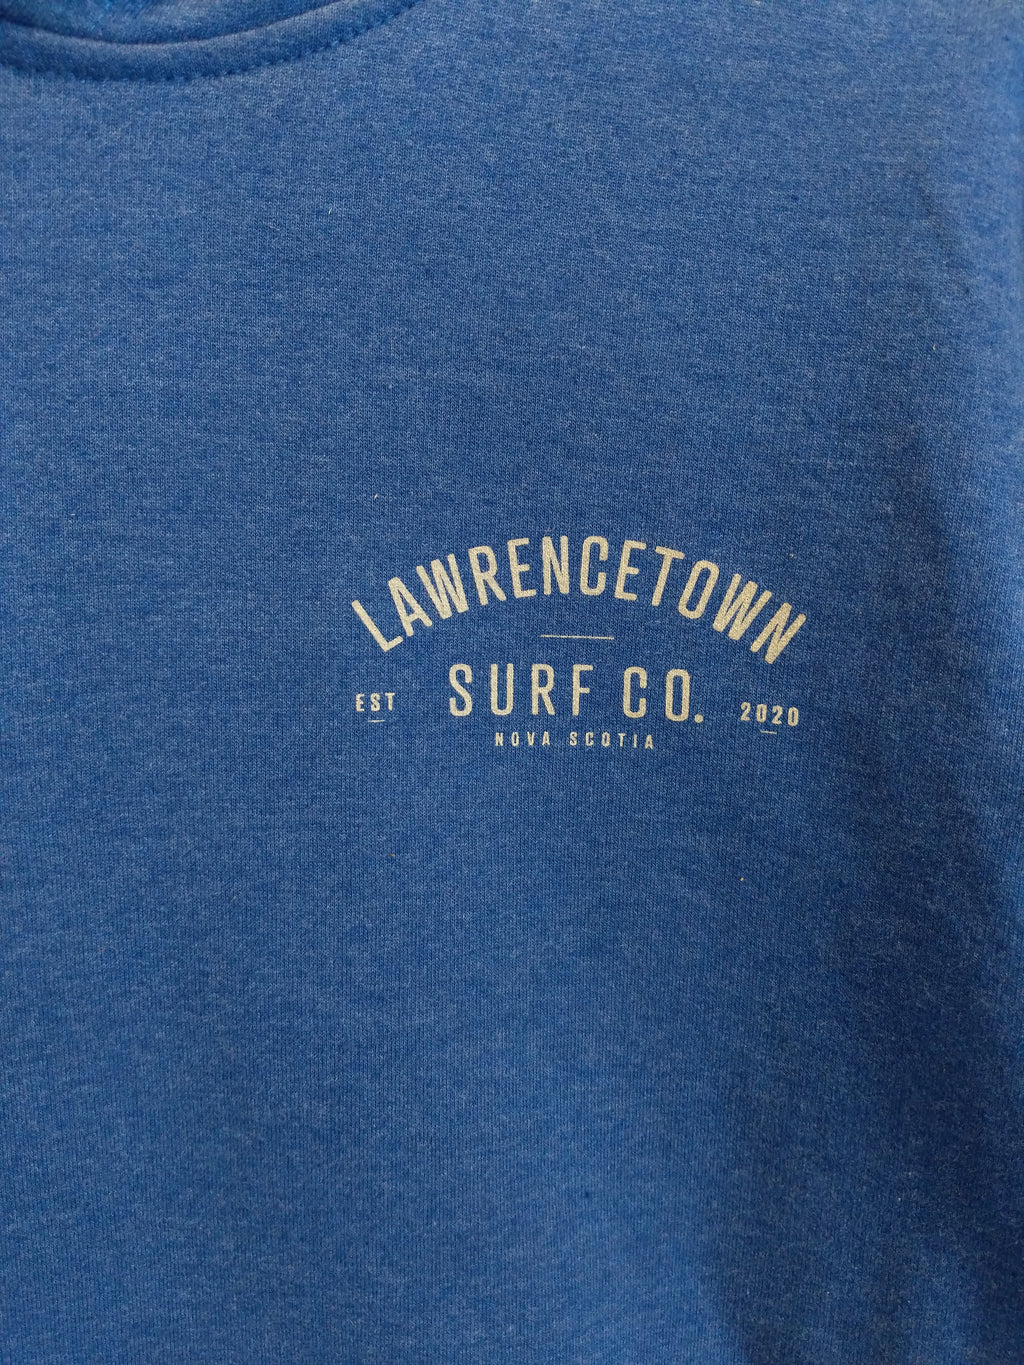 Lawrencetown Surf Co. Midweight Hoodie - Royal Blue / White